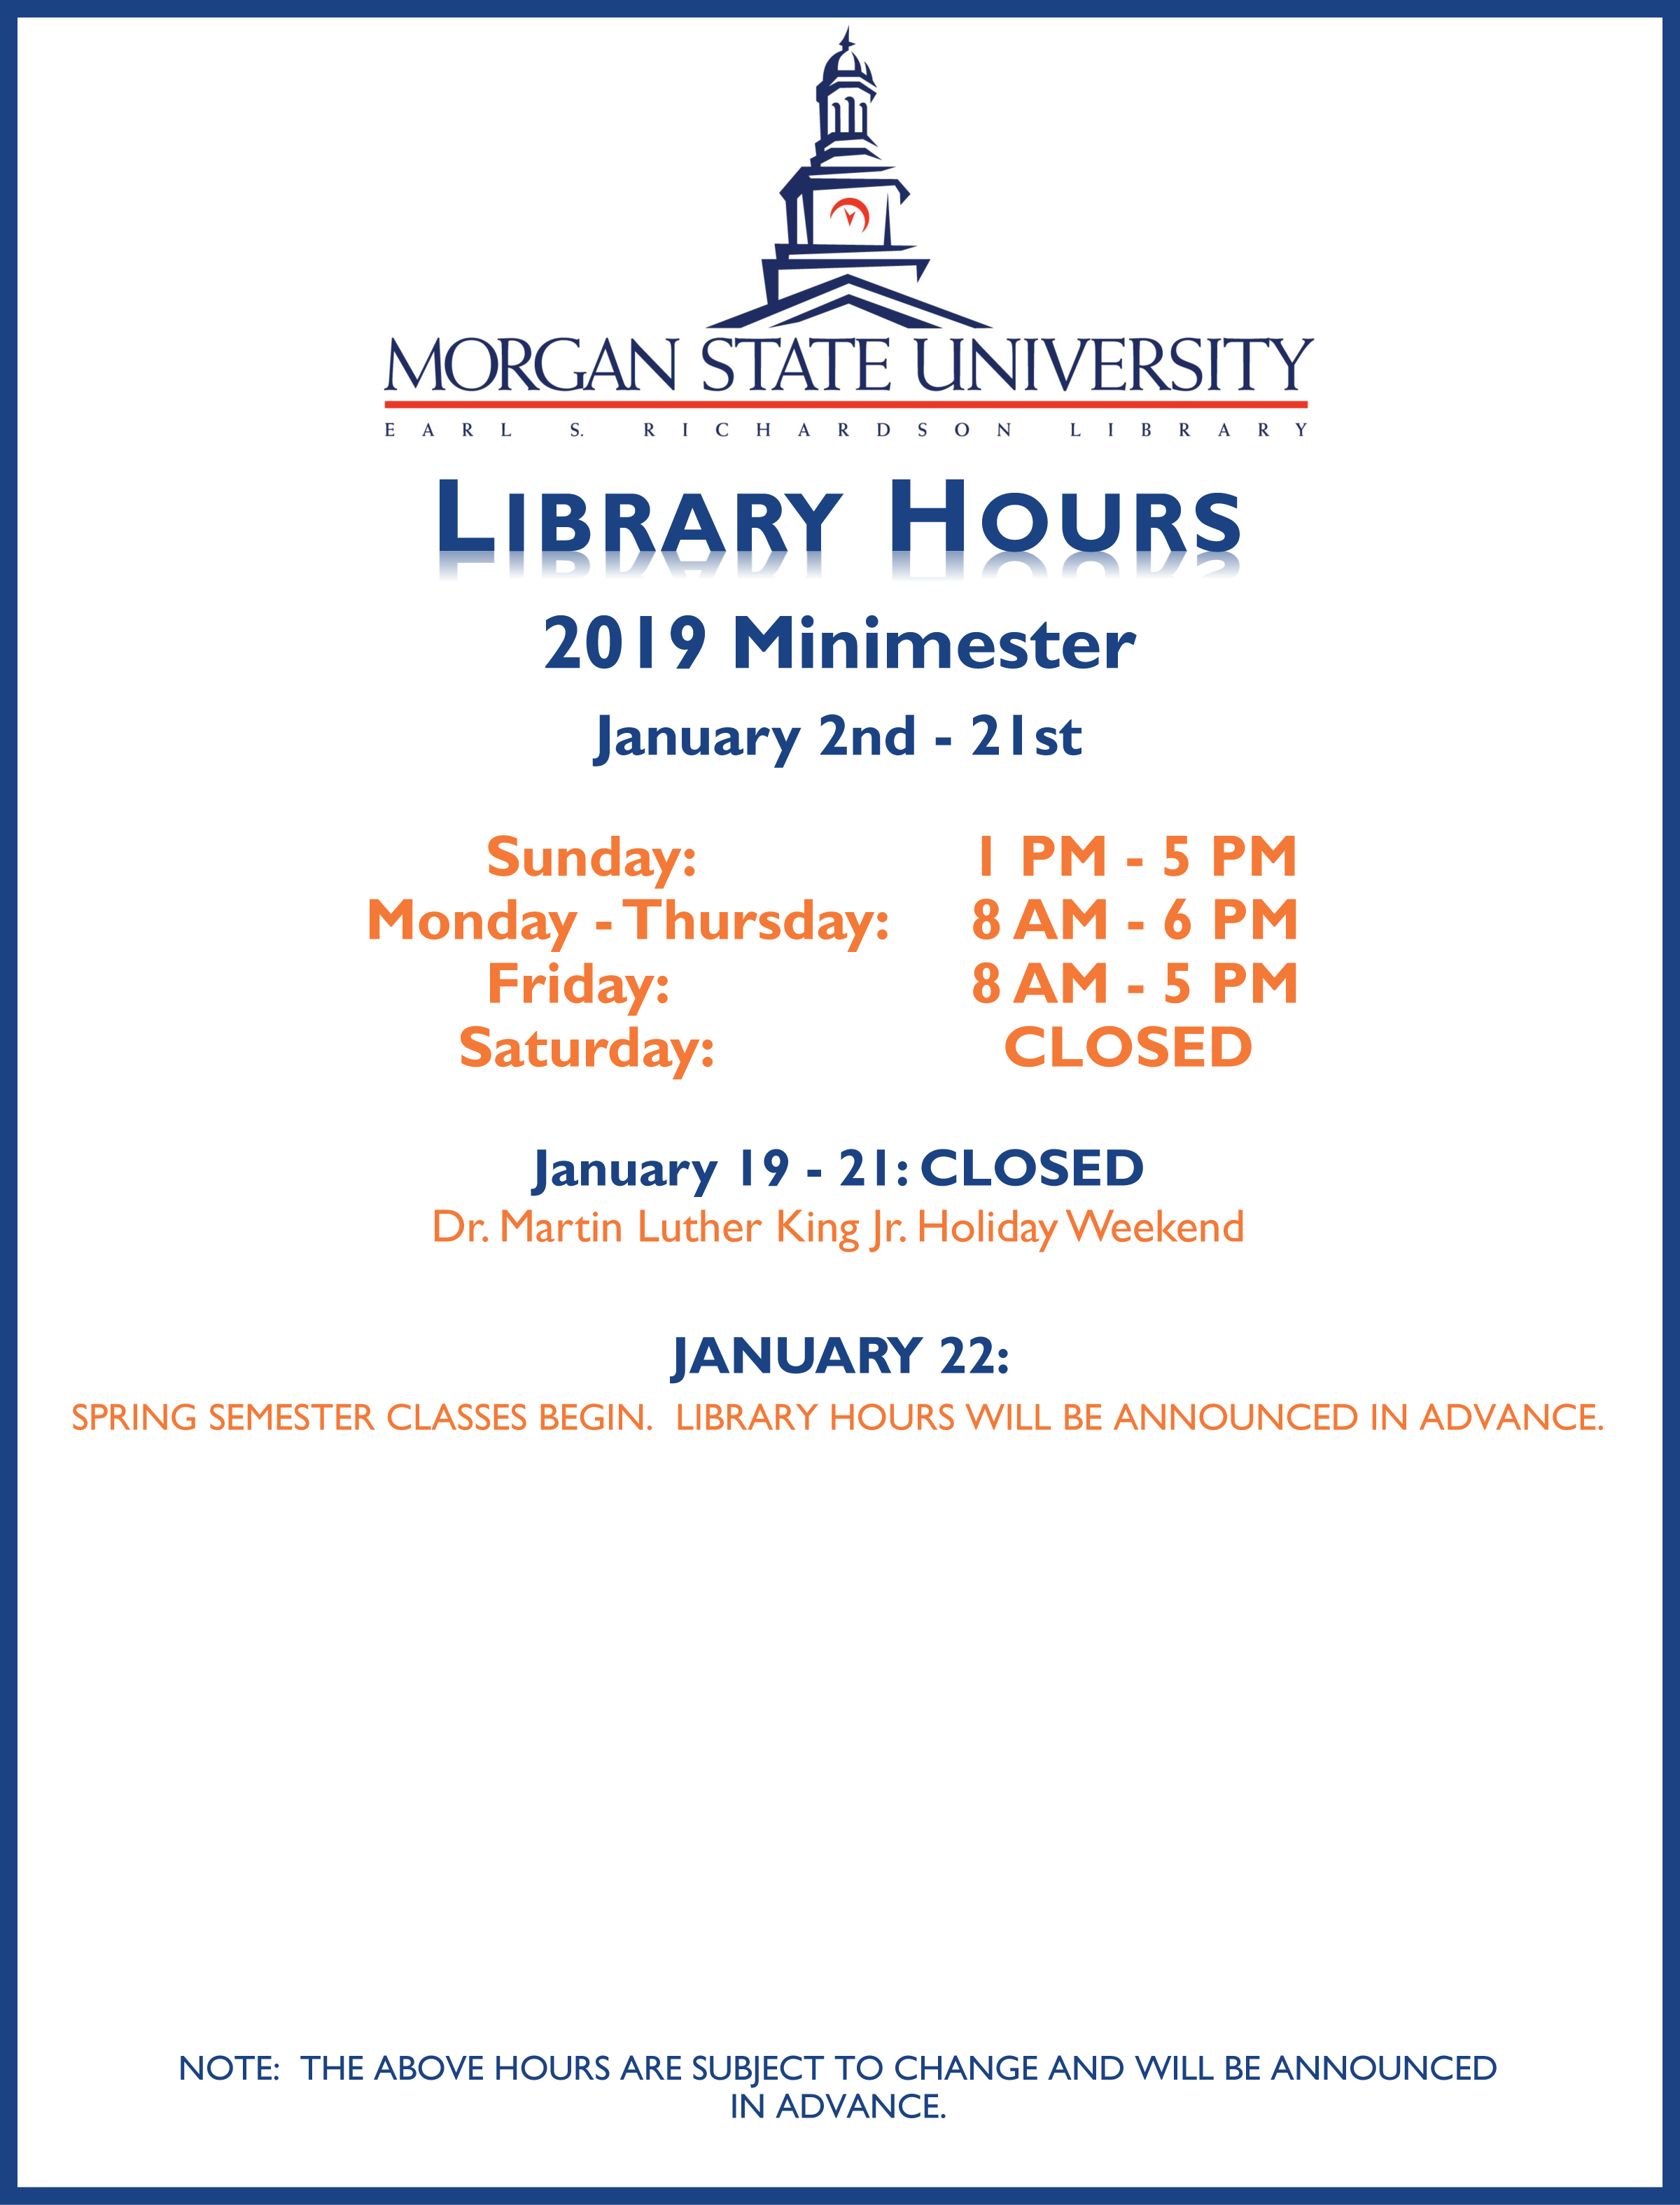 Library Hours for the 2019 minimester have been added to the website hours